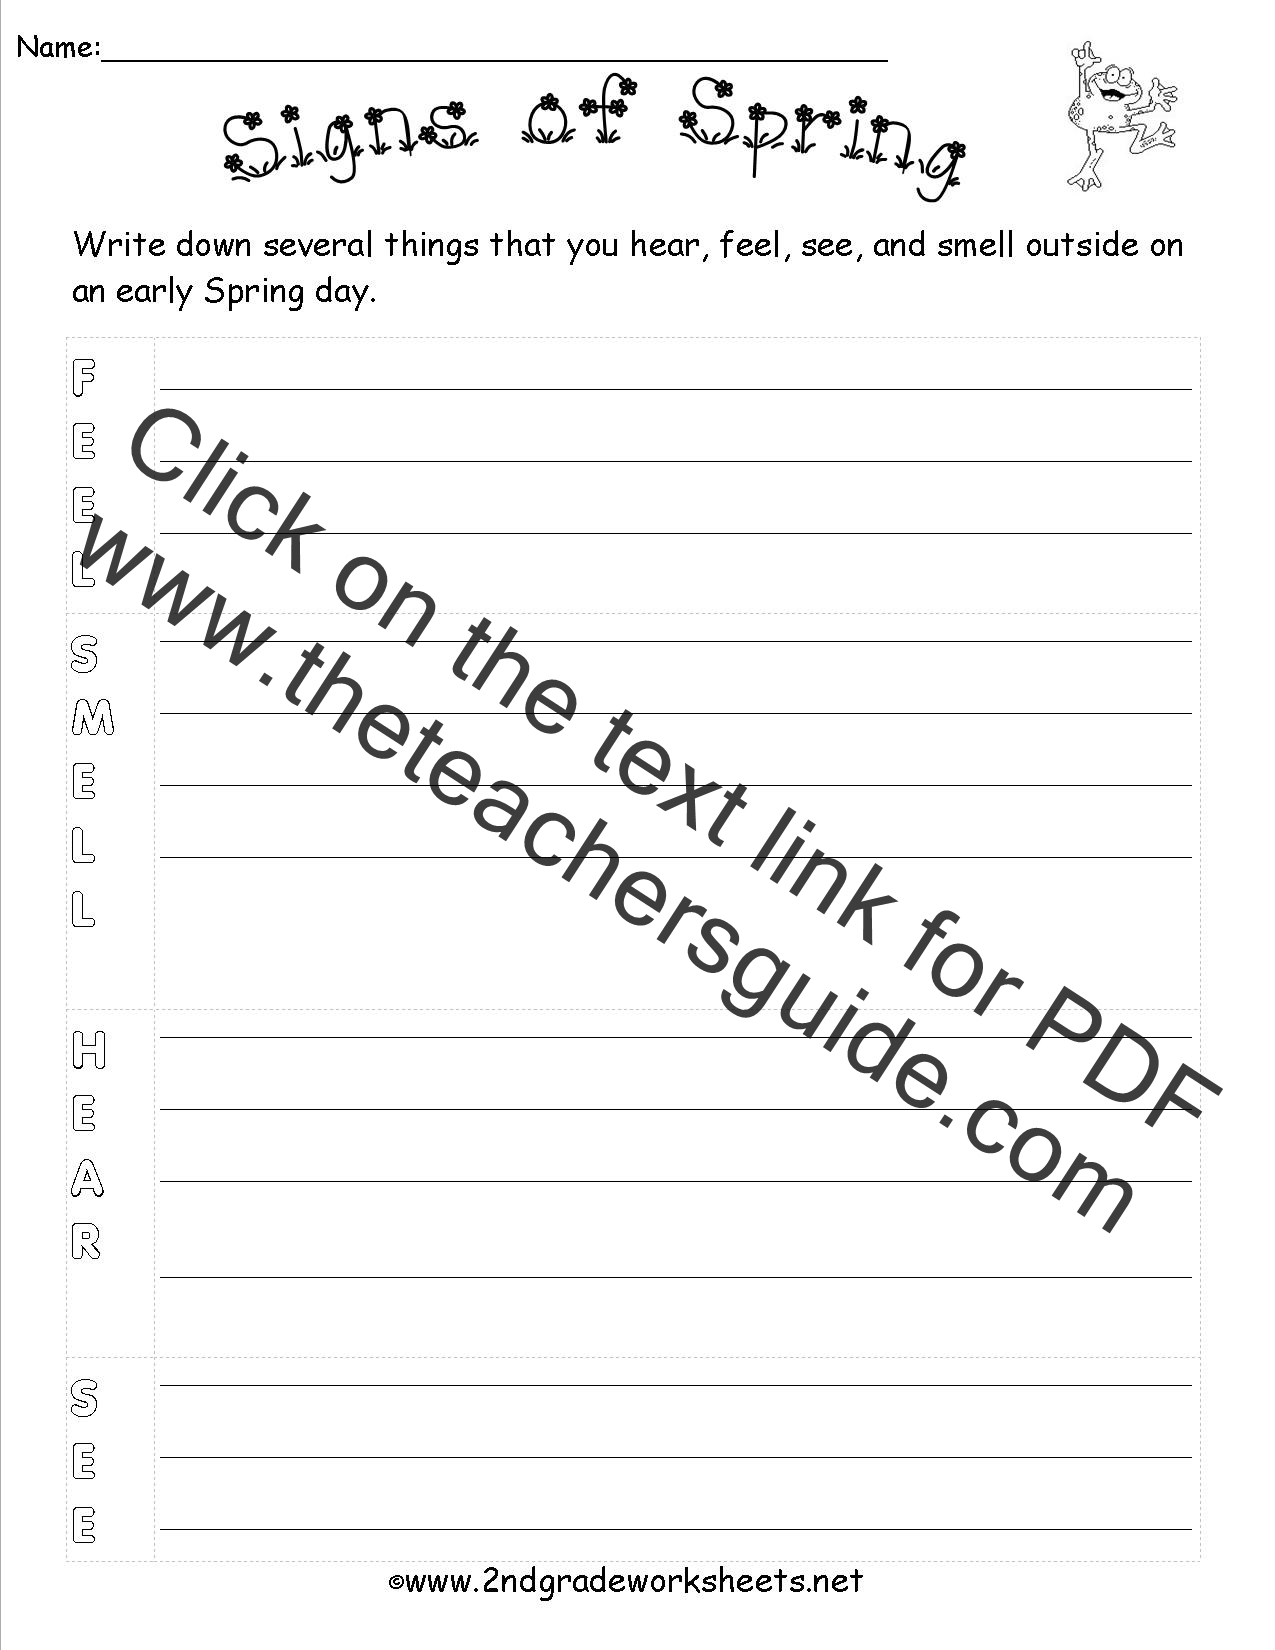 Theme Worksheets For 2nd Grade